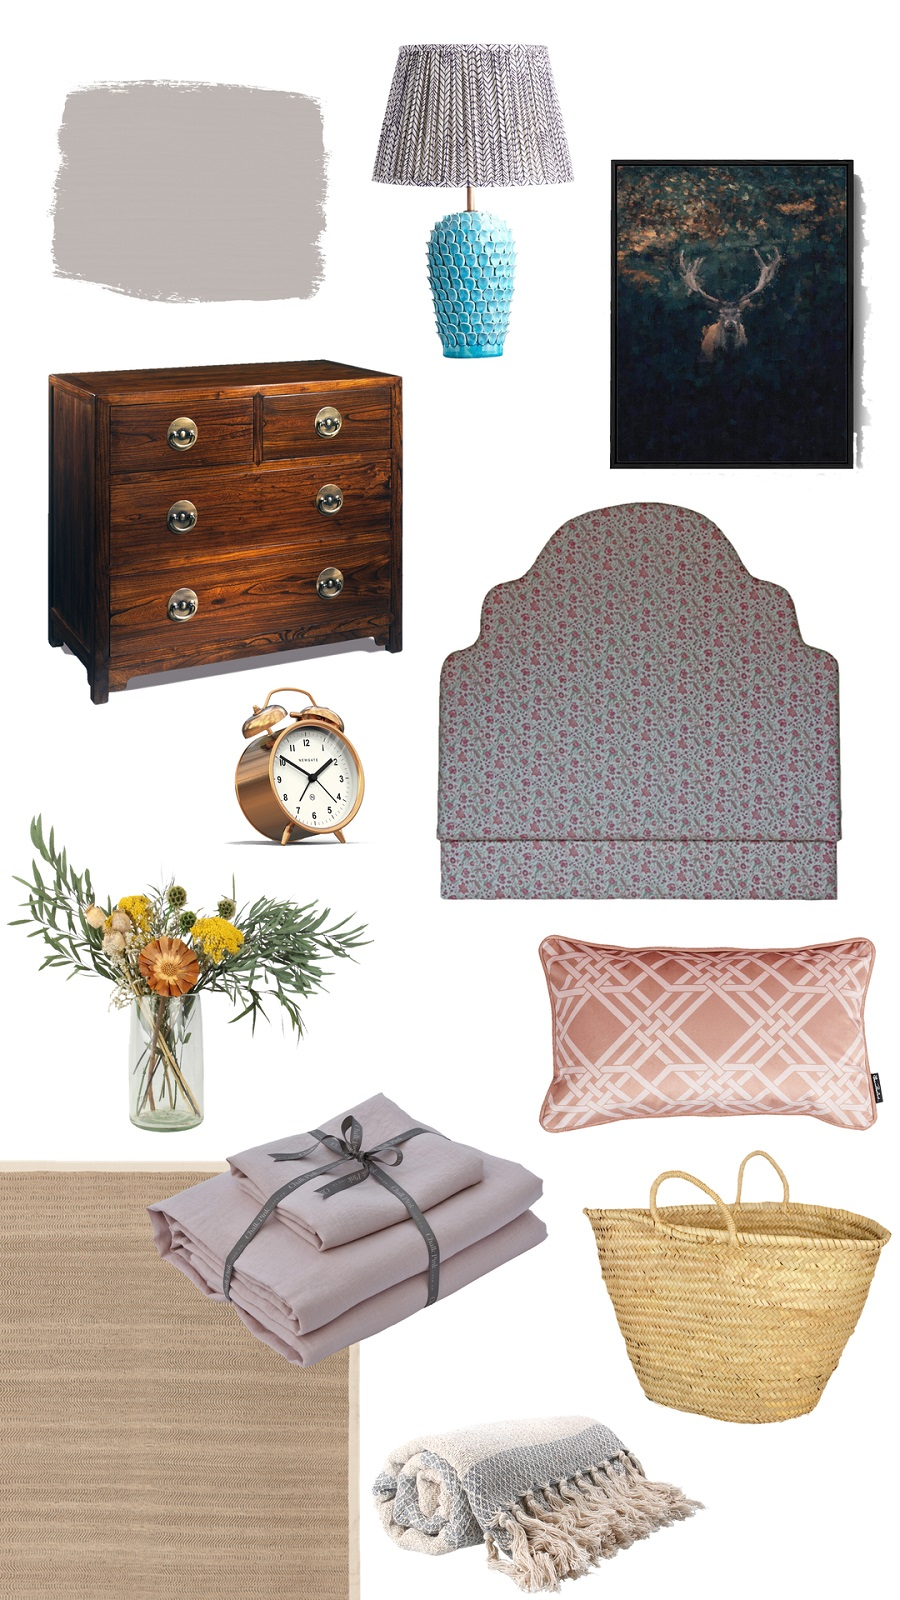 A Traditional Country House Style Bedroom and How to Get The Look